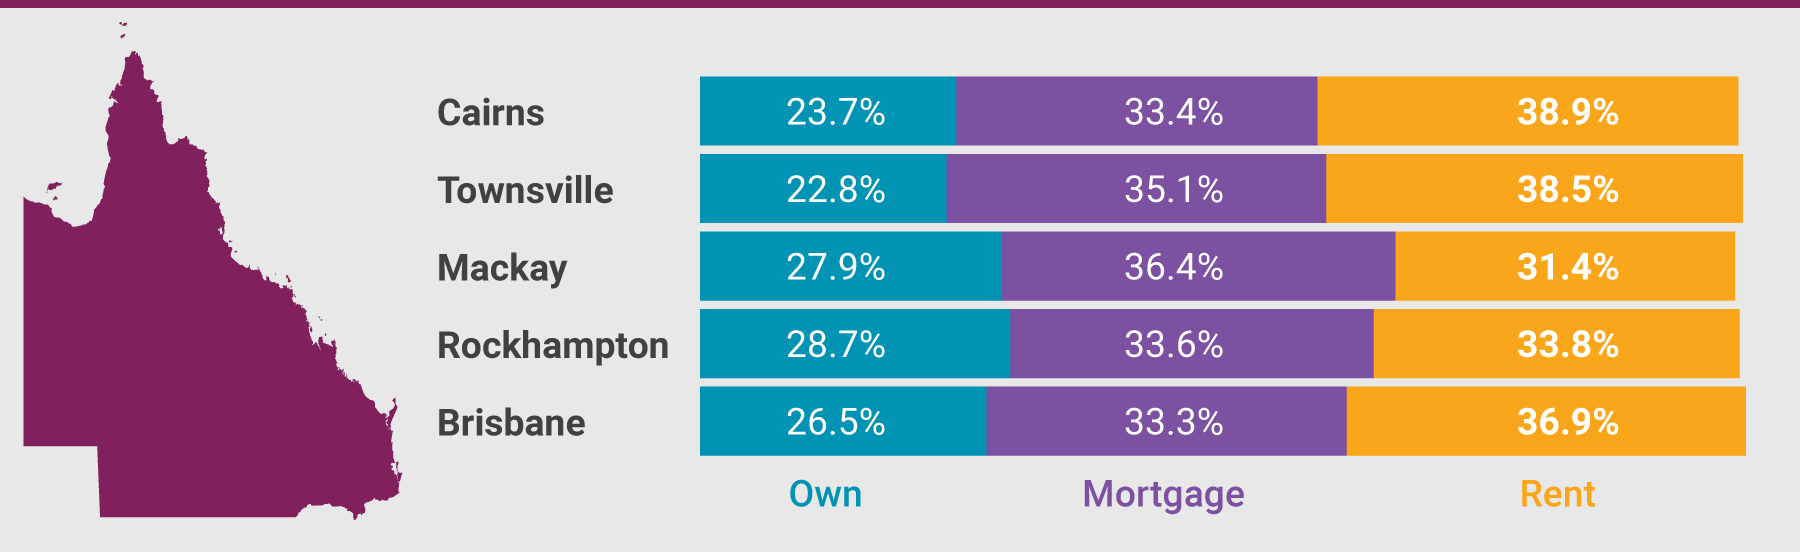 Rent vs. Mortgage vs. Own in major Queensland centres